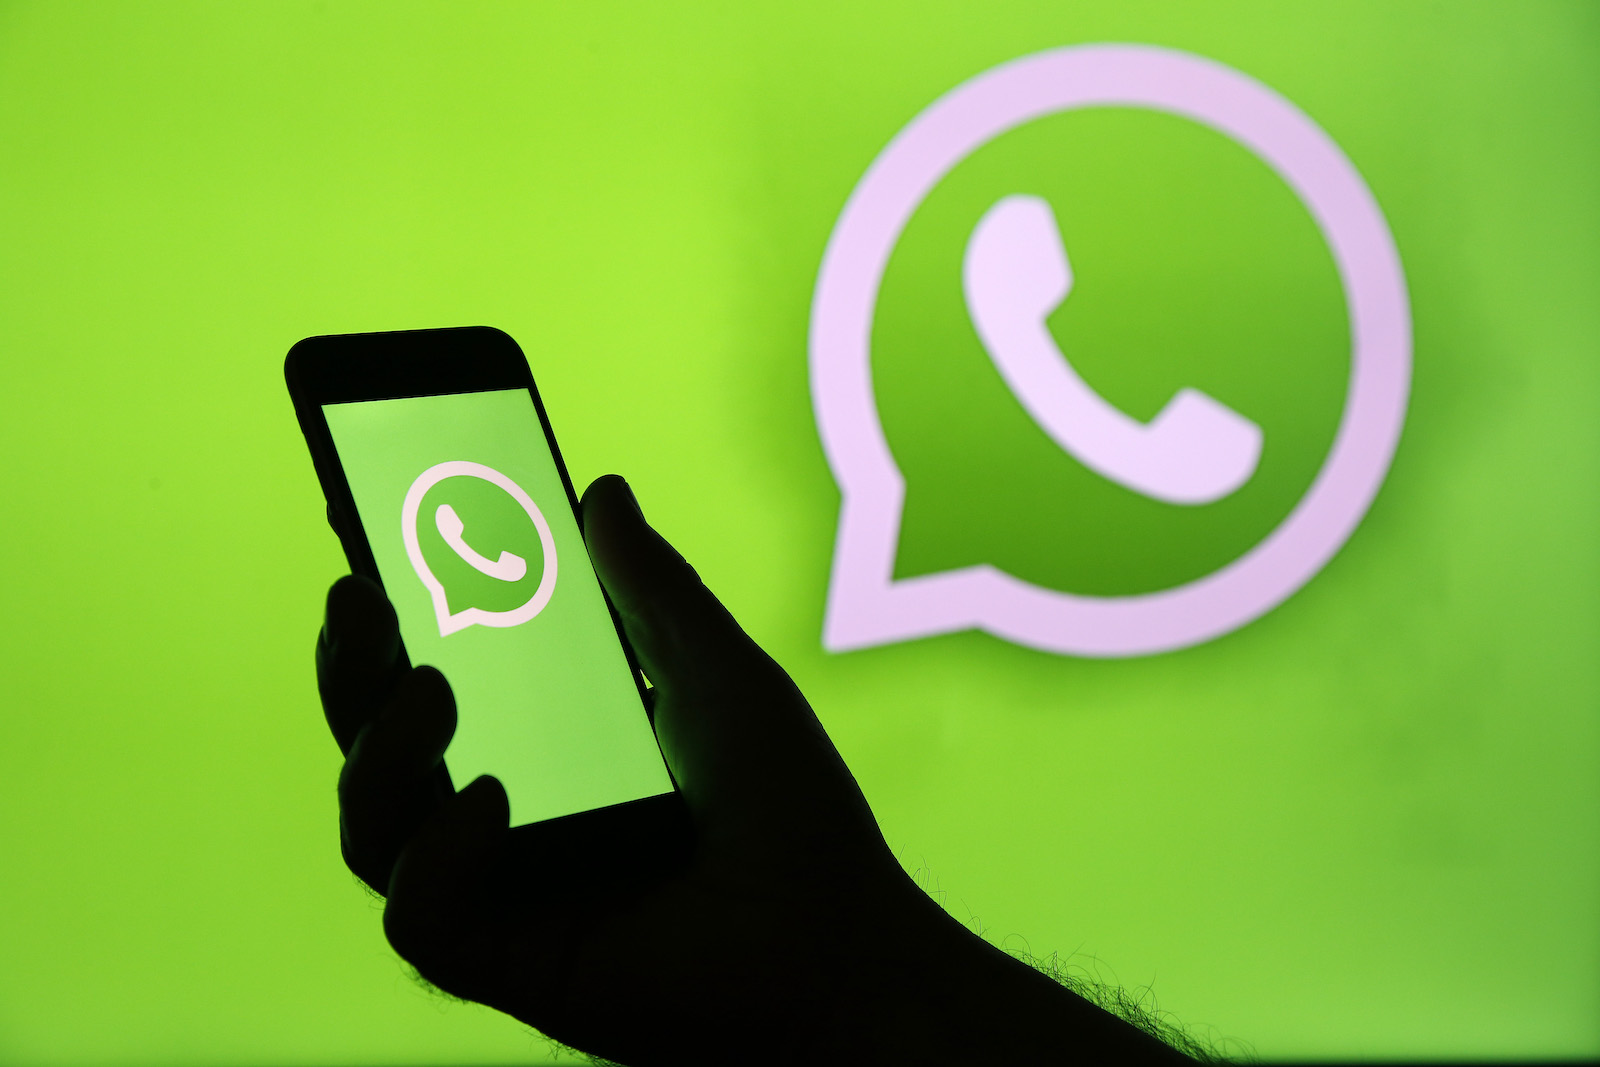 PARIS, FRANCE - DECEMBER 10: In this photo illustration, the WhatsApp logo is displayed on the screen of an iPhone in front of a TV screen displaying the WhatsApp logo on December 10, 2019 in Paris, France. The WhatsApp instant messenger service will stop working on millions of phones in the next couple of months as the company withdraws support for some older mobile platforms. From February 1, 2020, any iPhone running iOS 8 or older will no longer be supported, along with any Android device running version 2.3.7 or older. (Photo by Chesnot/Getty Images)